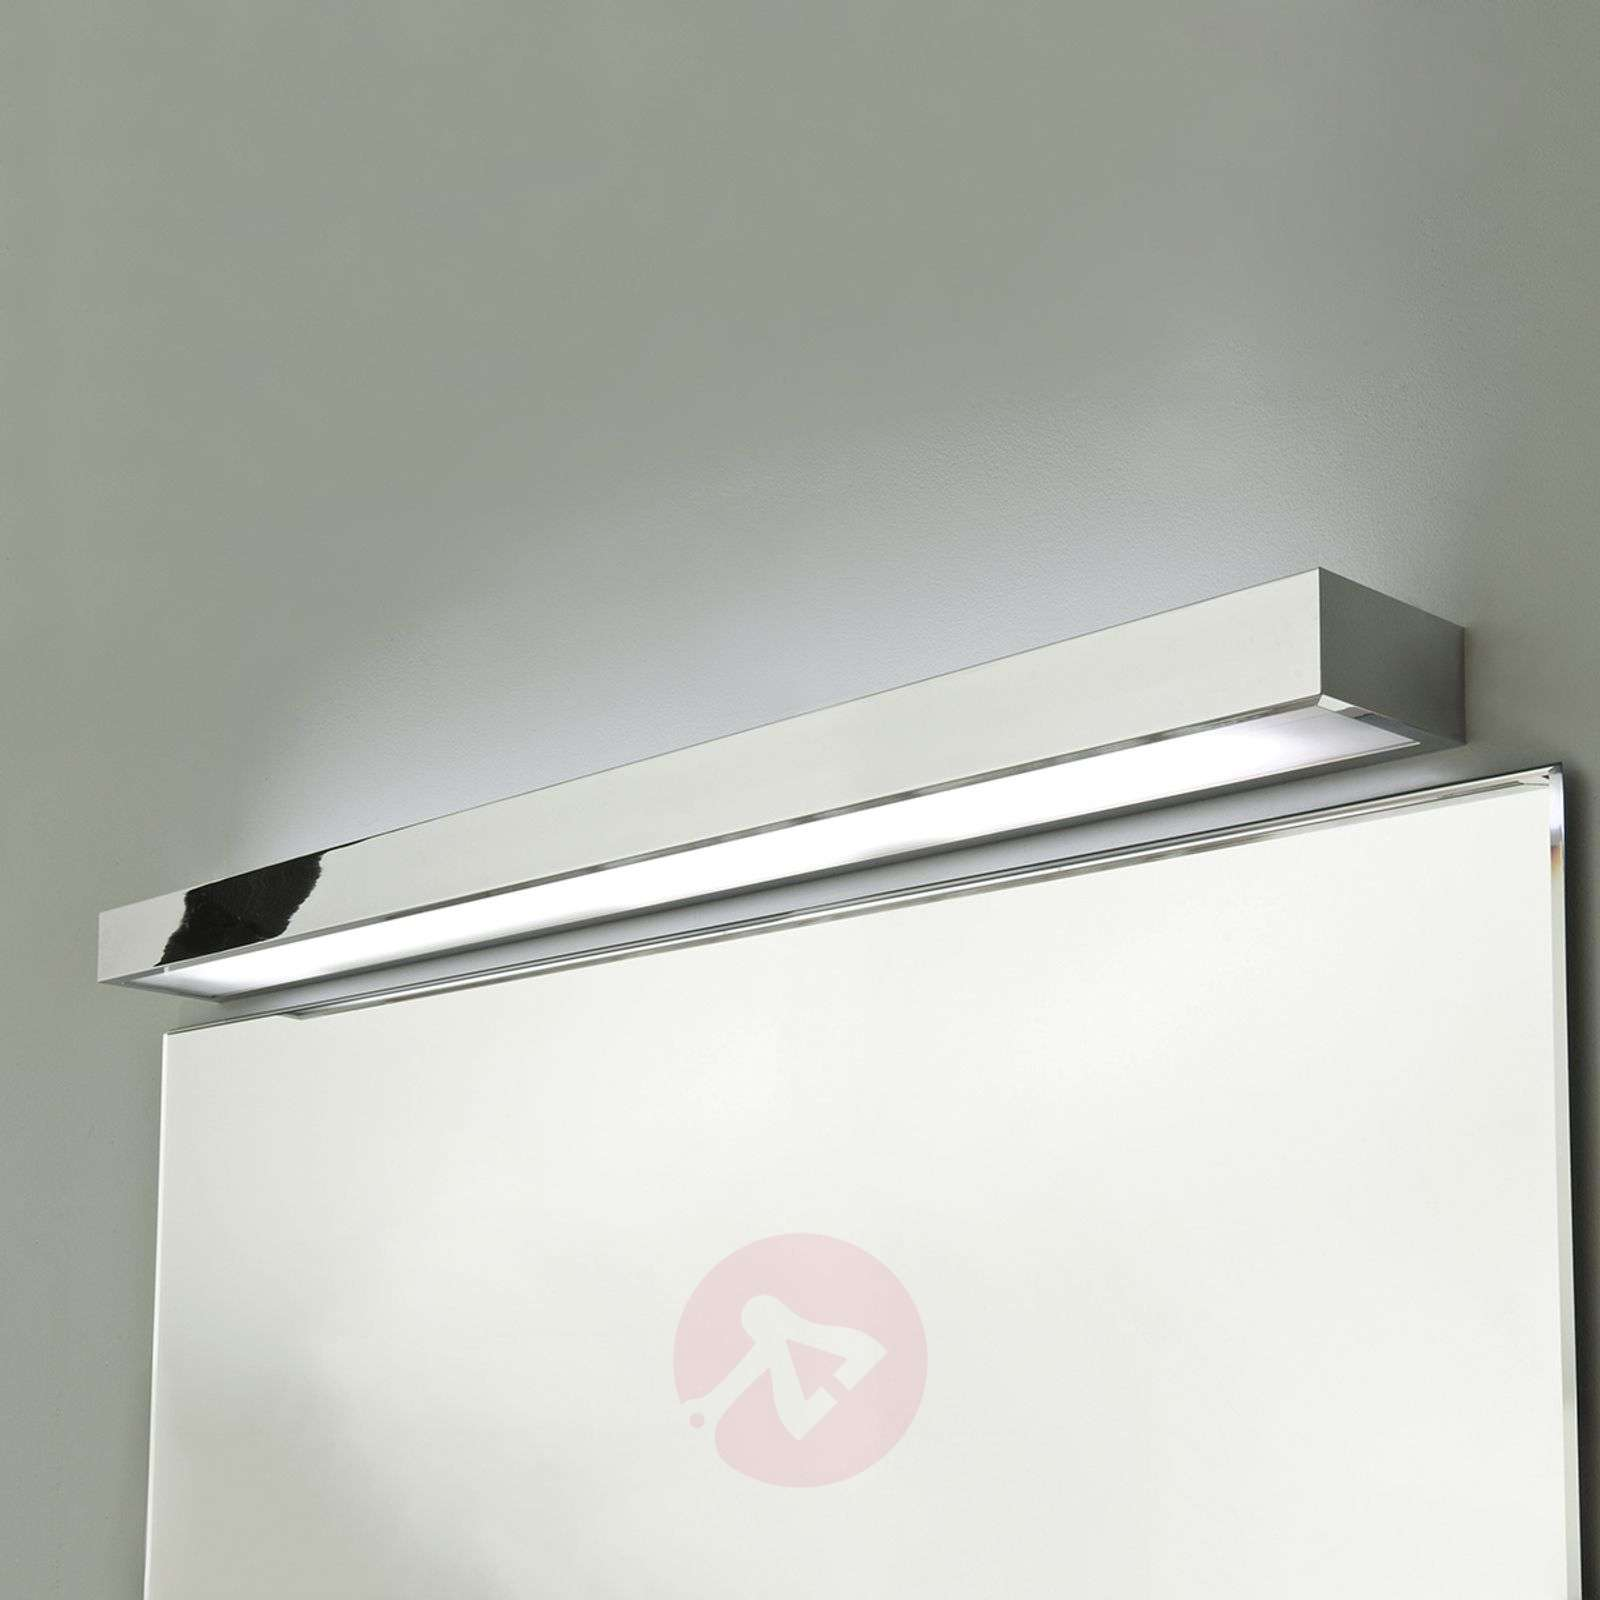 Tallin wall light length 90 cm-1020030-02